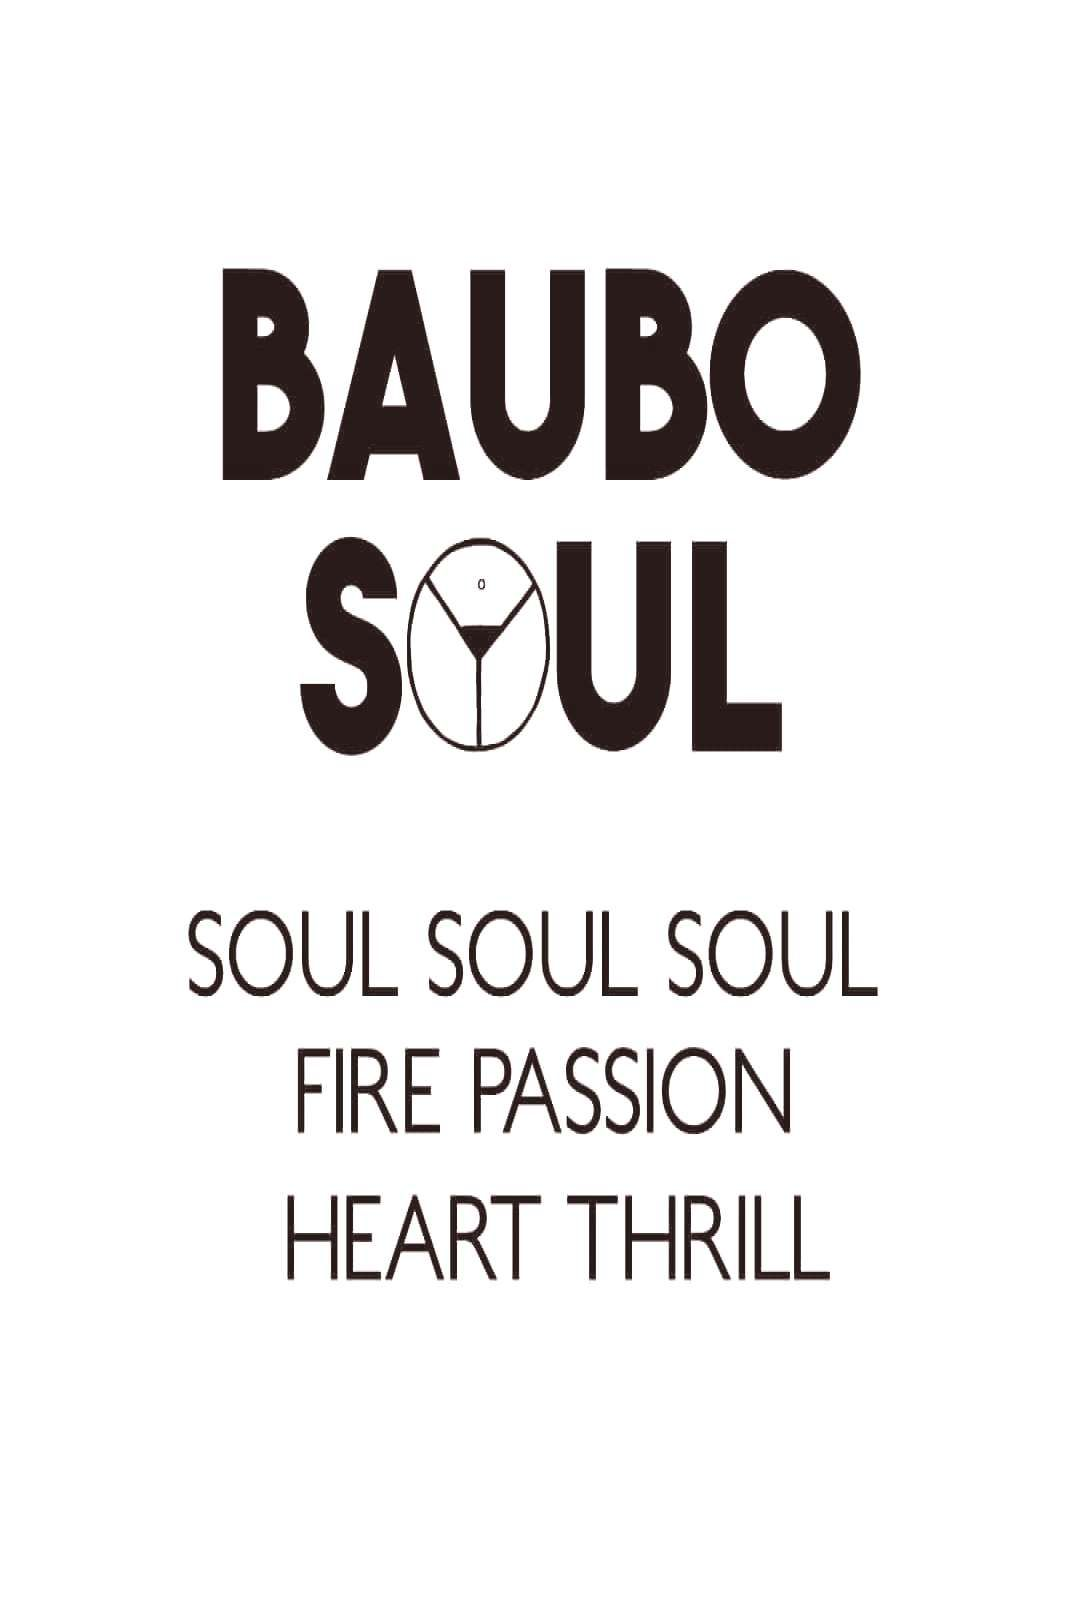 Baubo Soul SOUL SOUL SOUL FIRE PASSION HEART THRILL This is the m